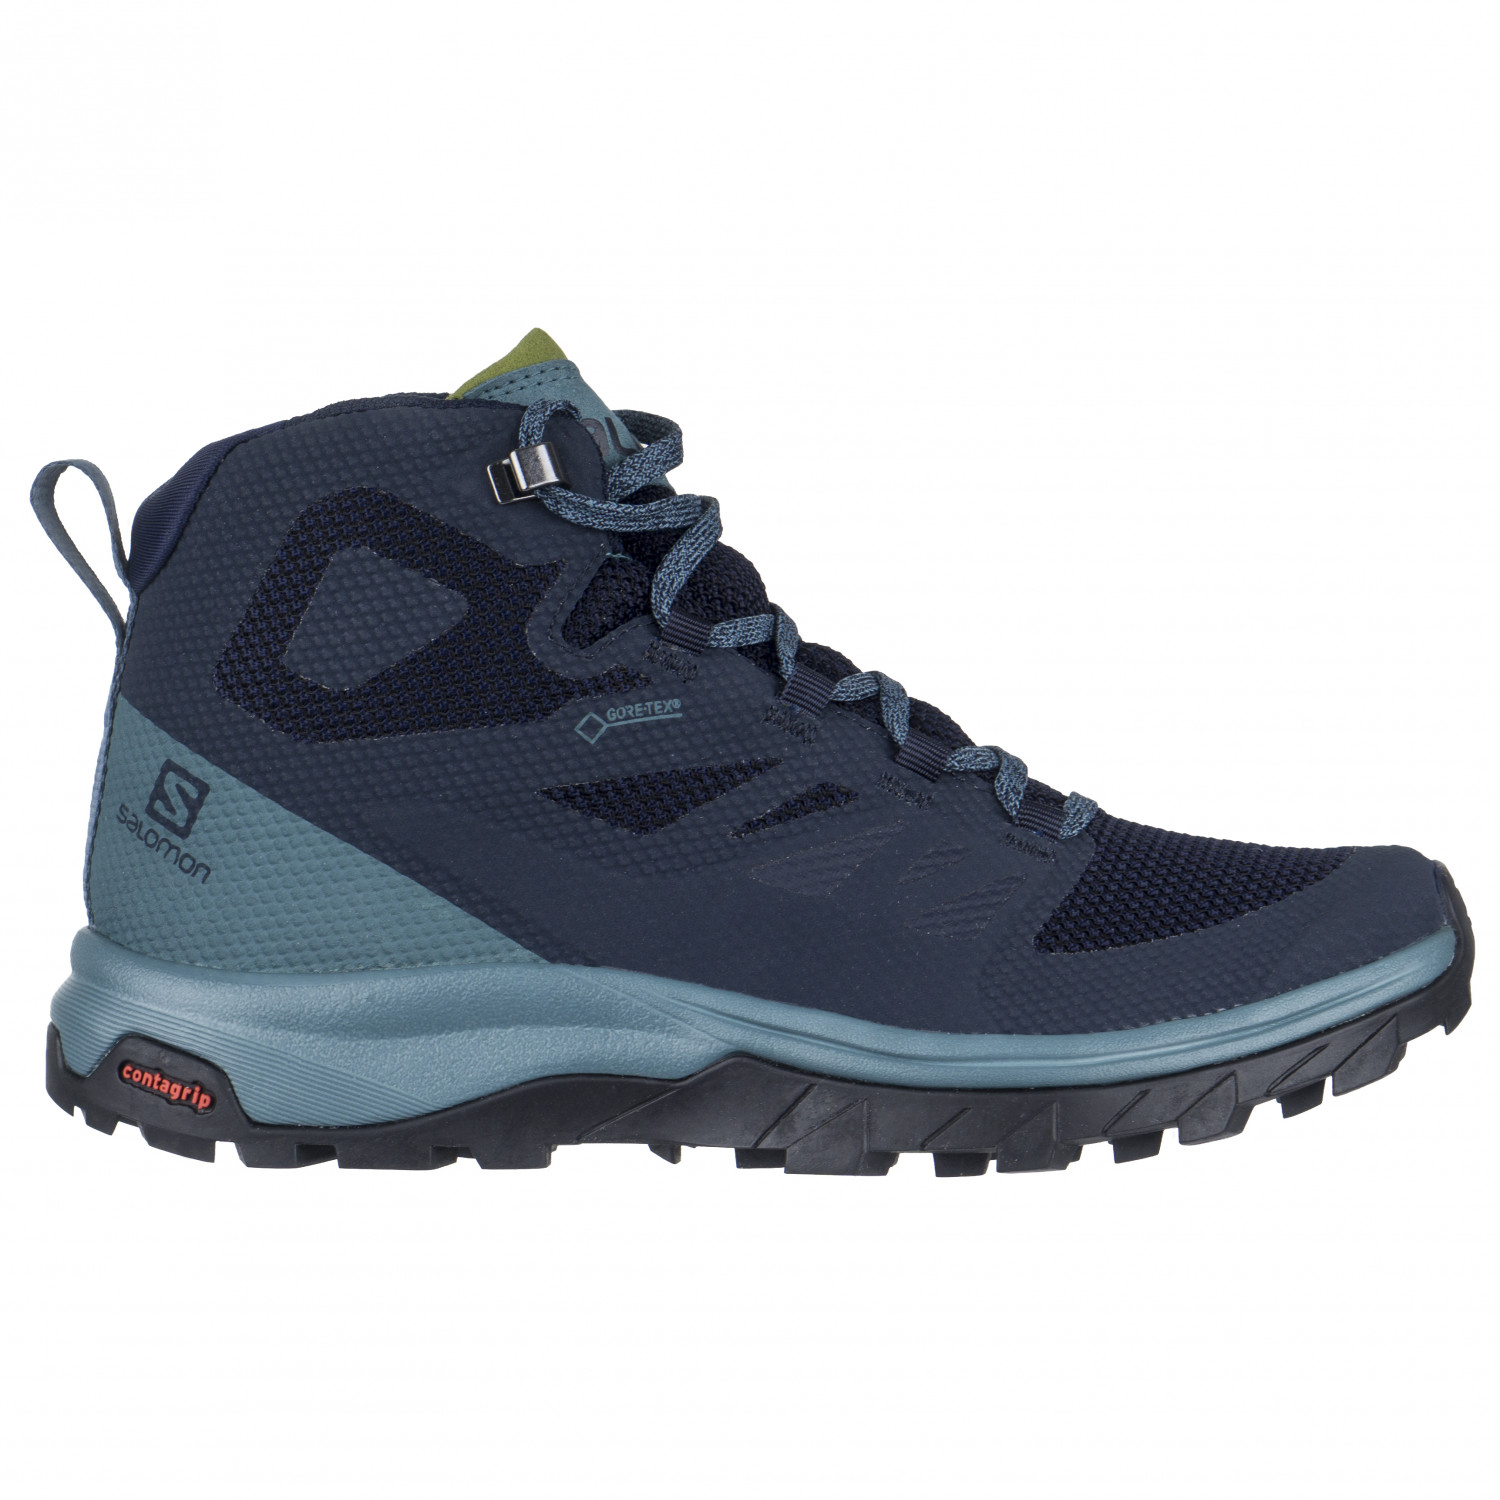 salomon outline mid gtx hiking boots - women's online